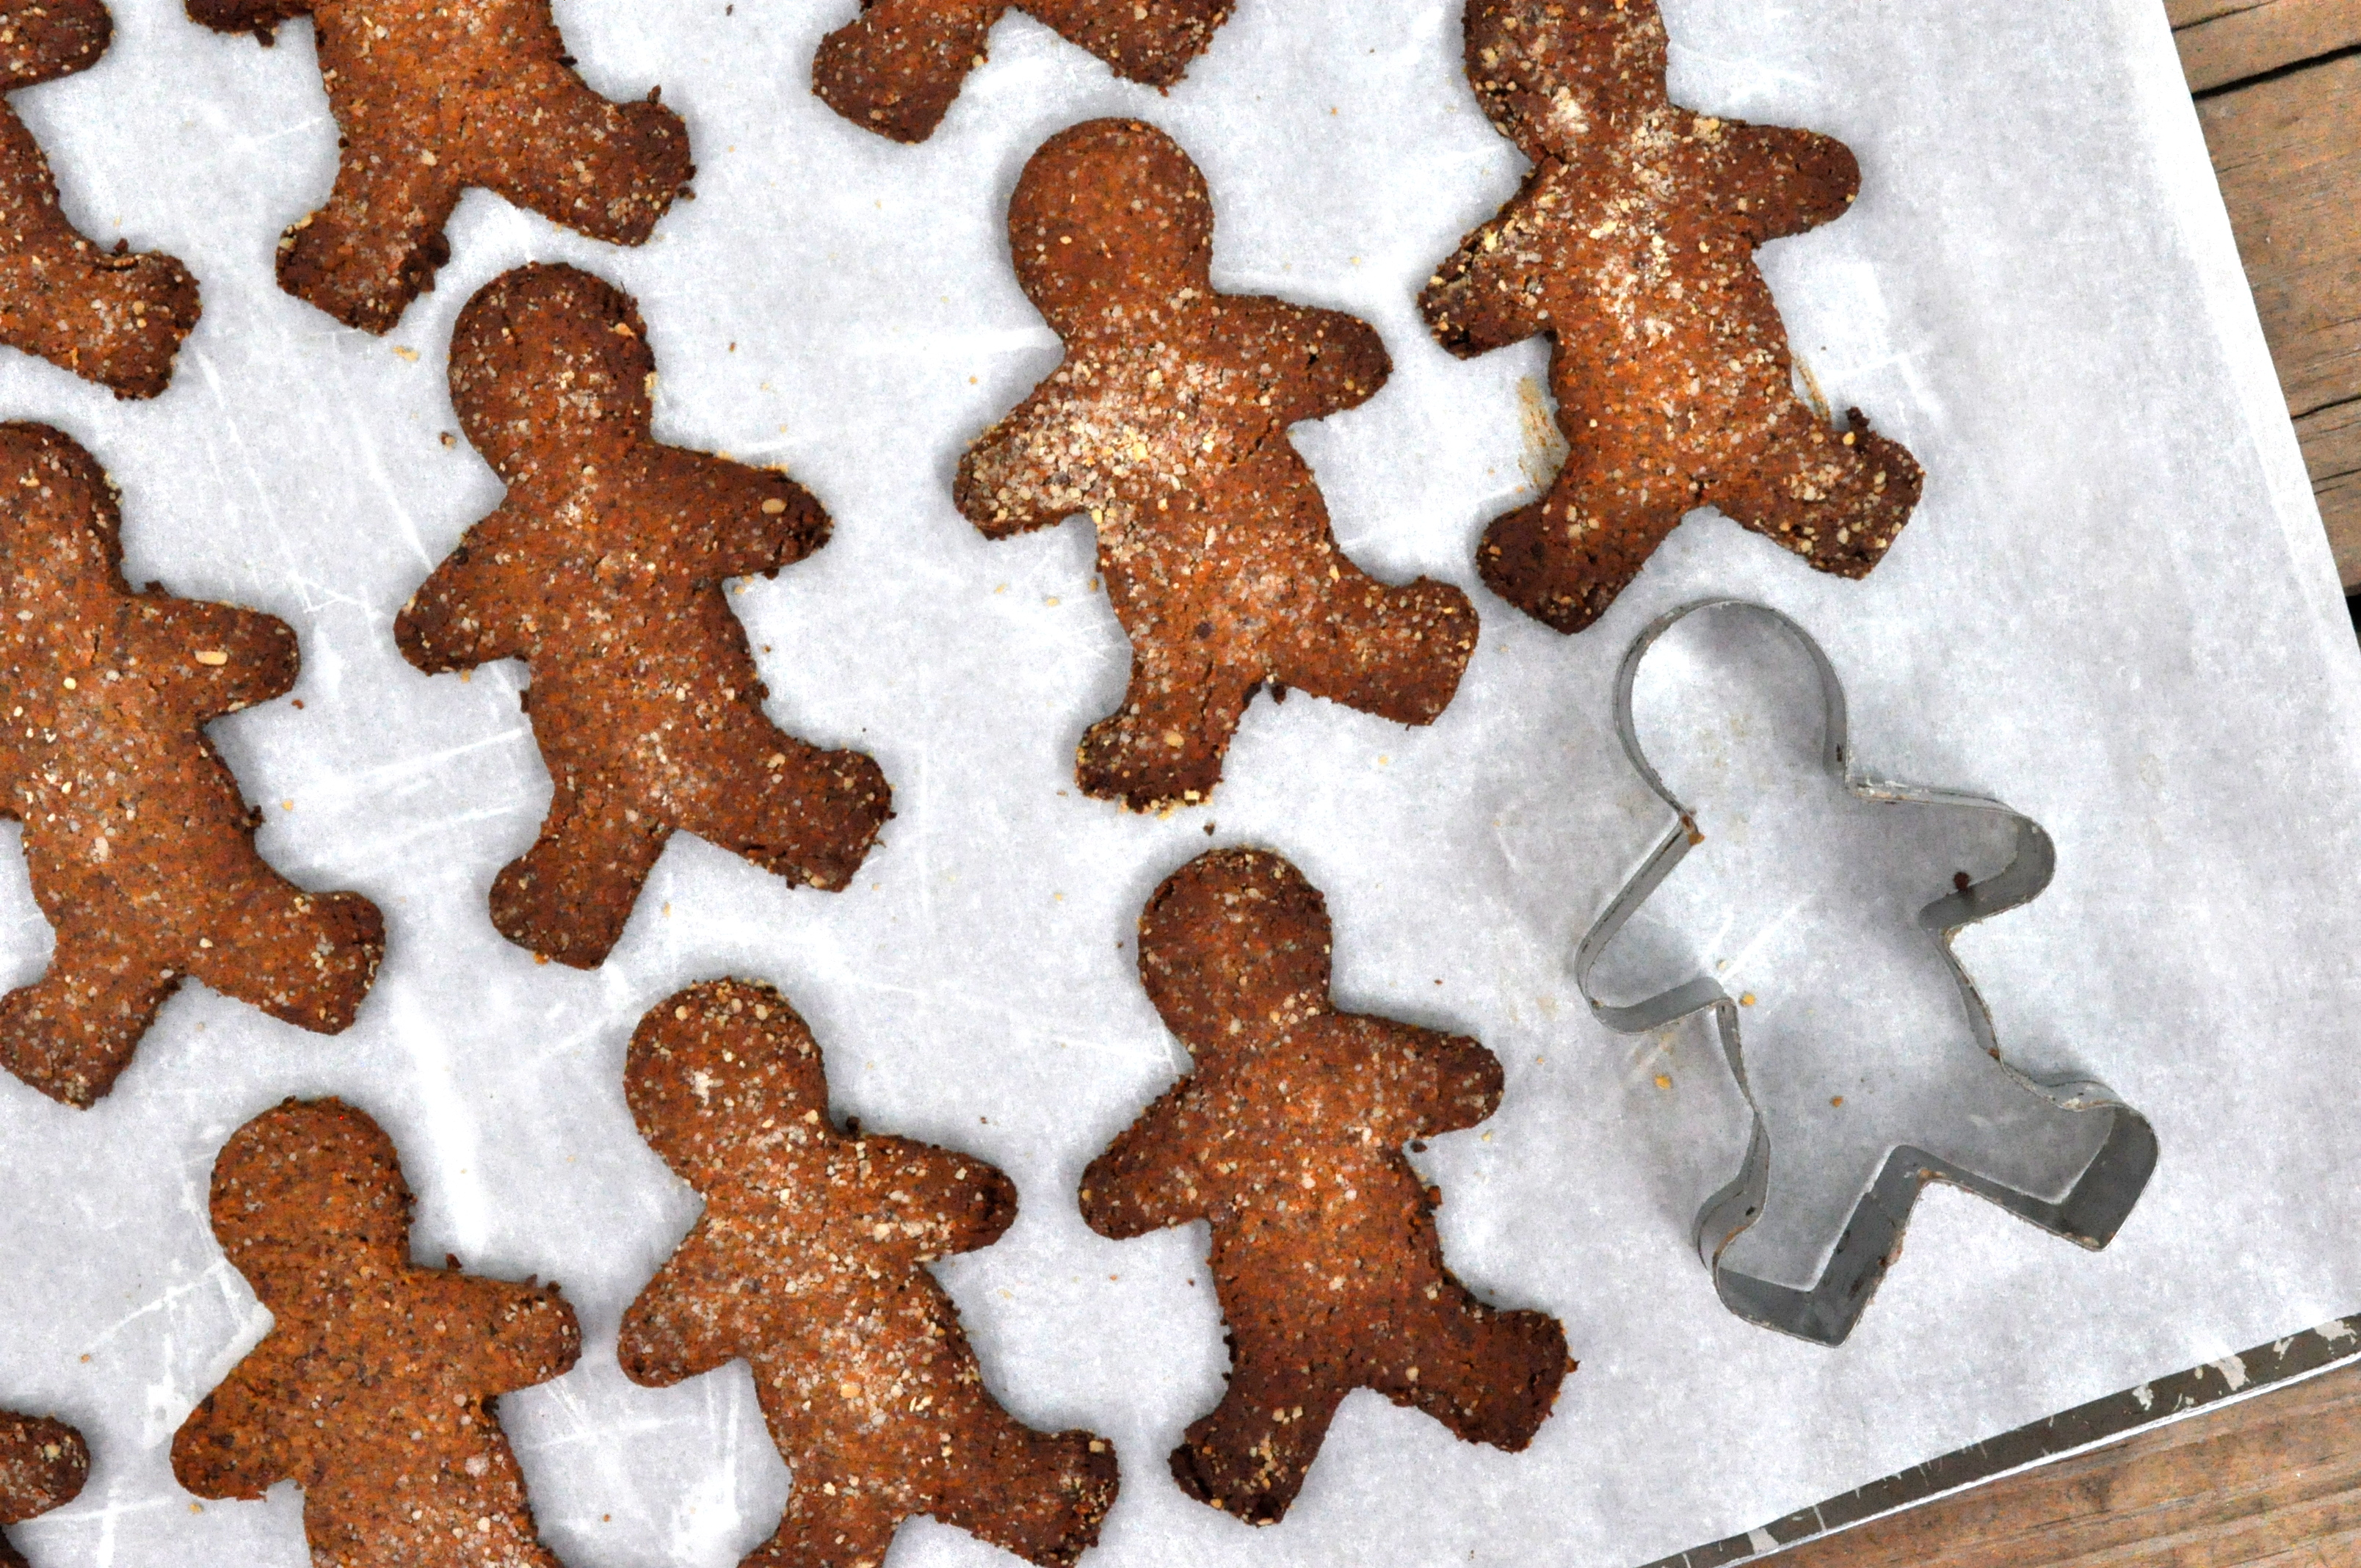 Fed & Fit » Paleo Spicy Gingerbread Cookies